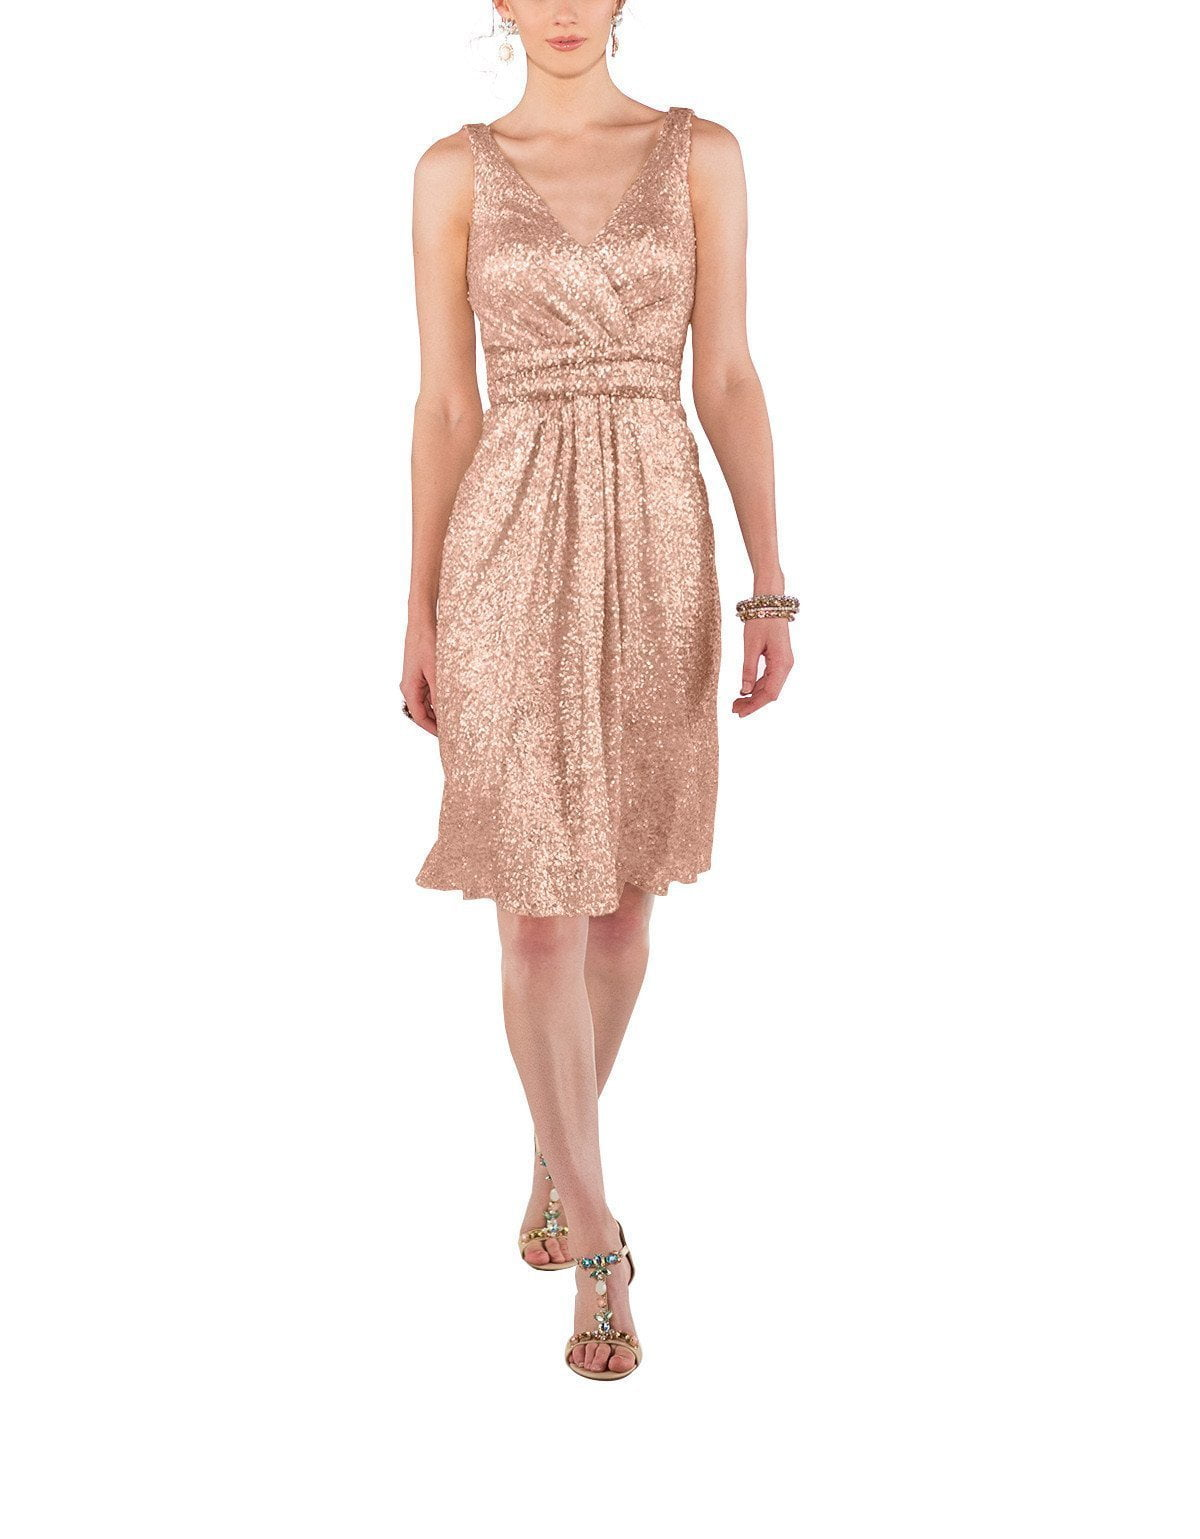 Sorella Vita Style 8685 in Rose Gold Sequin